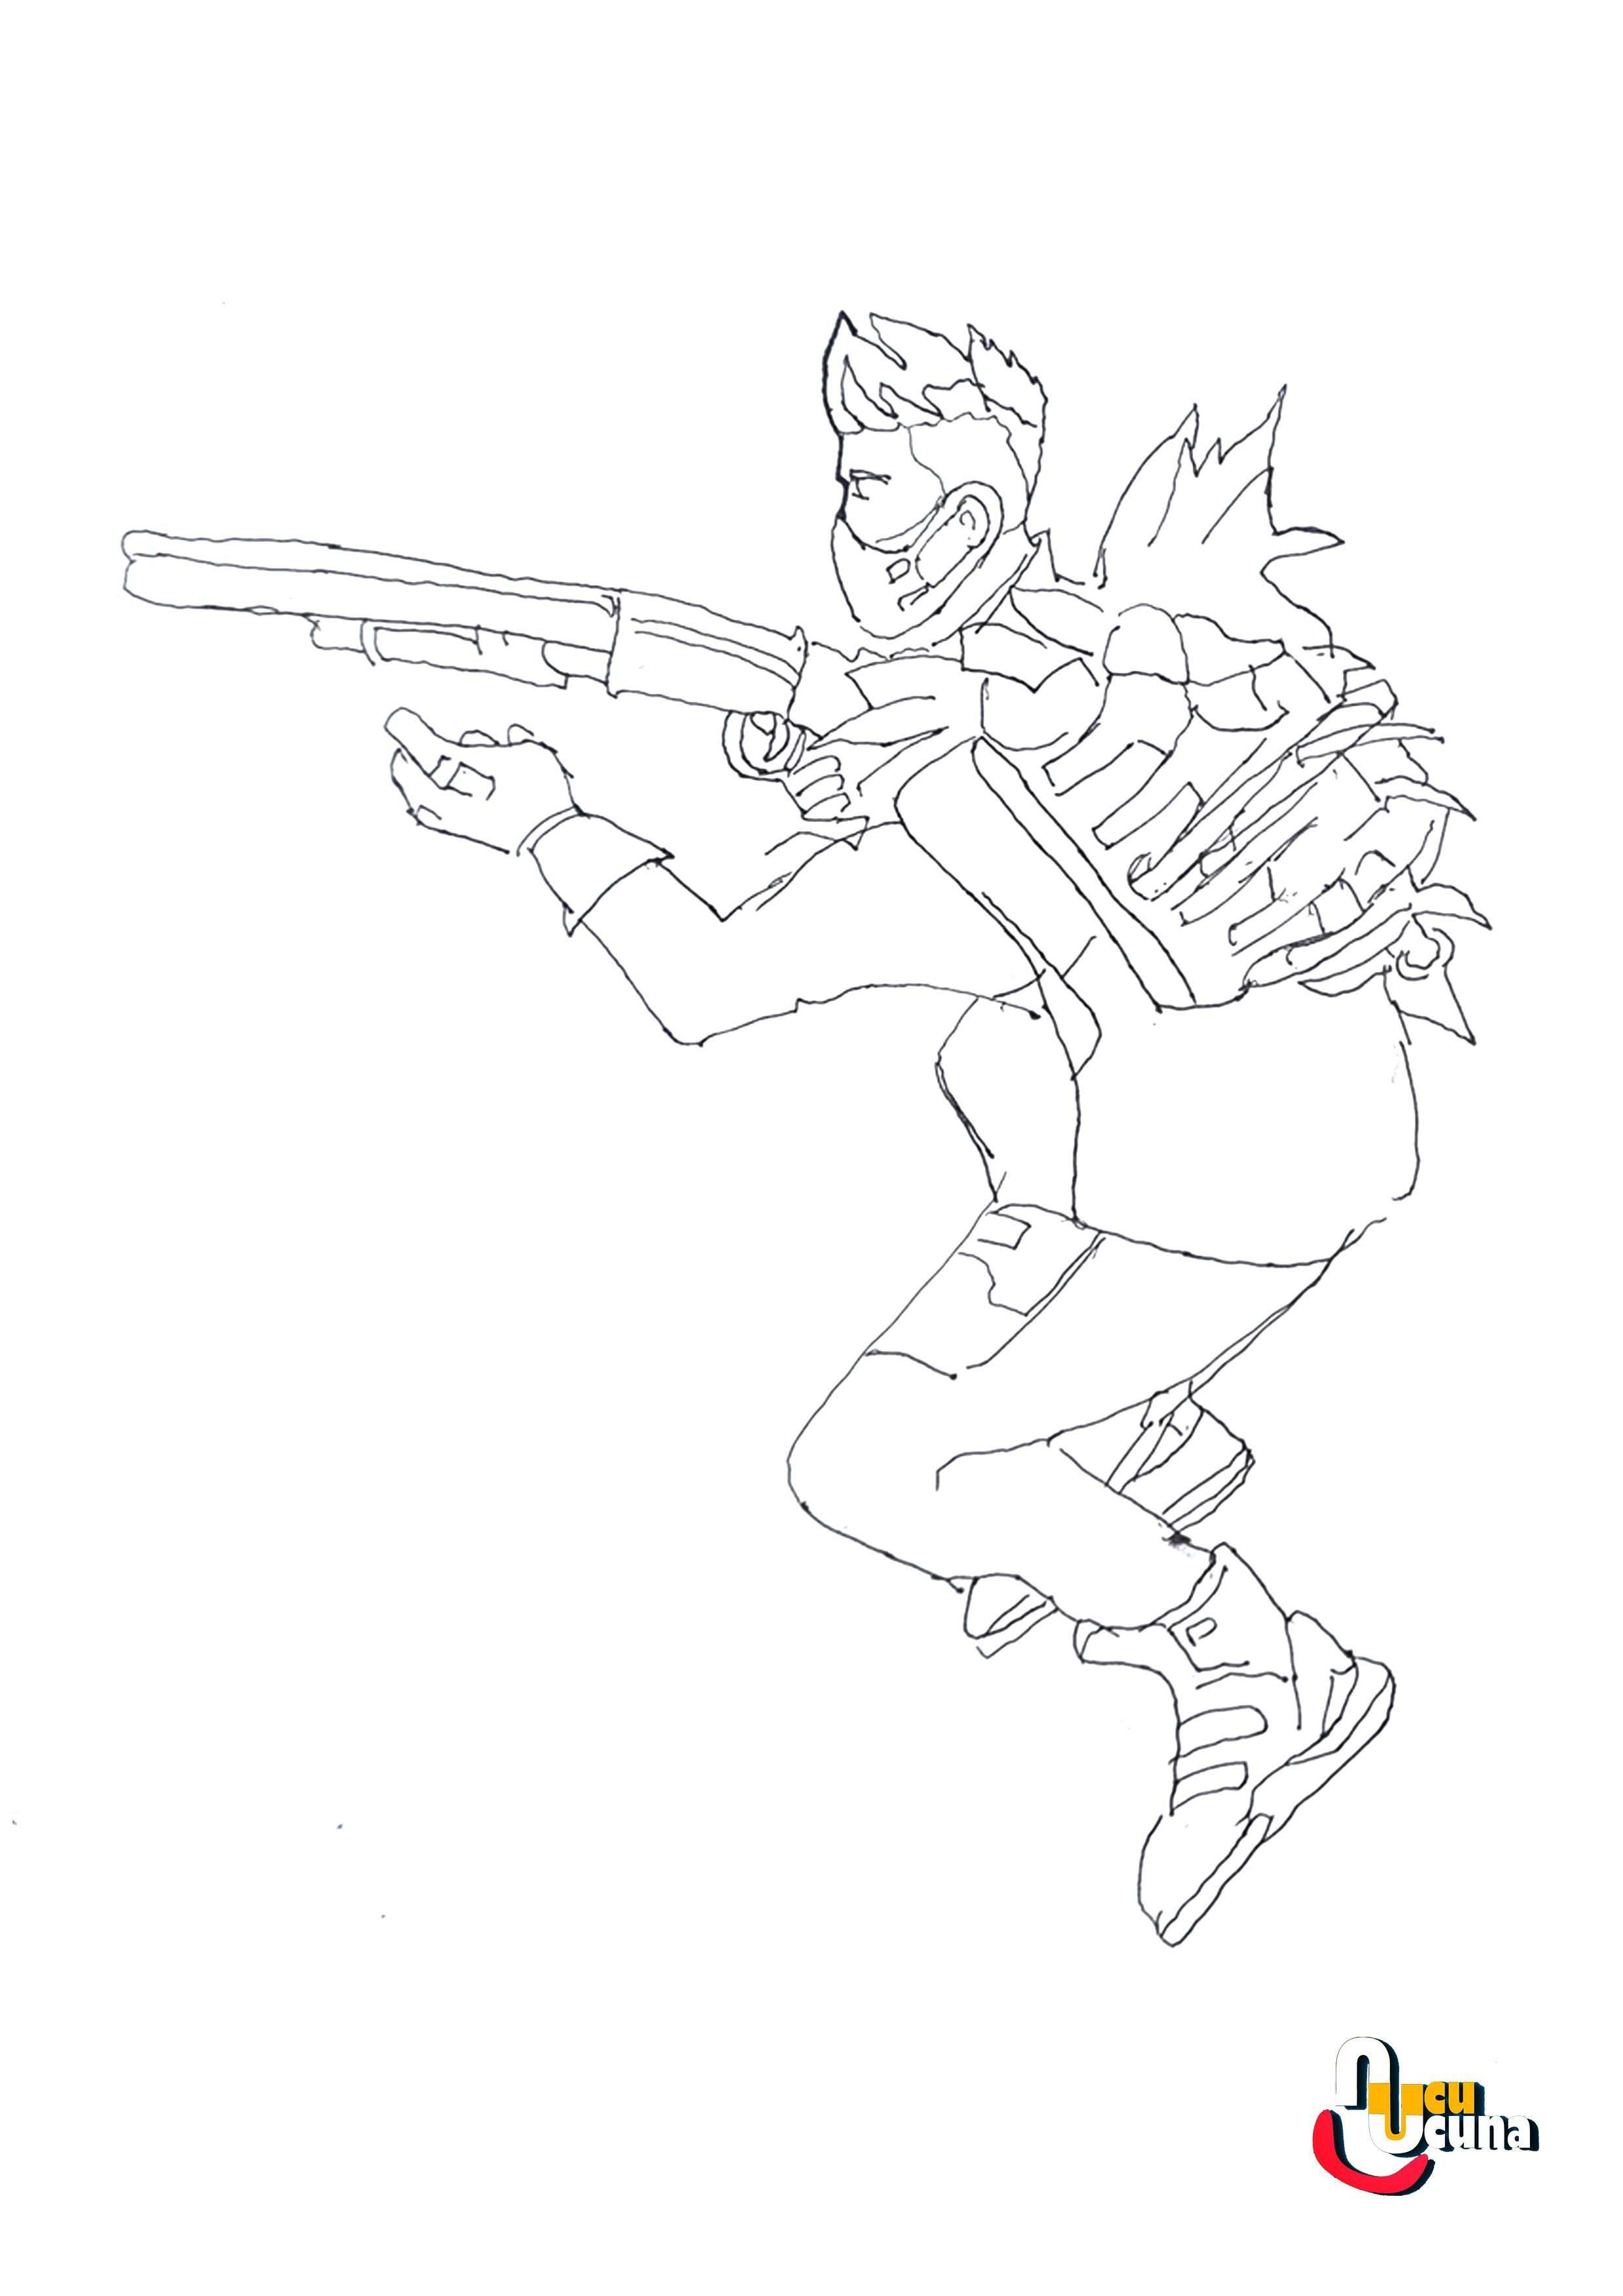 Drift Draw Learn How To Draw Drift From Fortnite Step By Step Beginner Drawing Tutorial Drawing For Beginners Drawing Tutorials For Beginners Drawing Tutorial